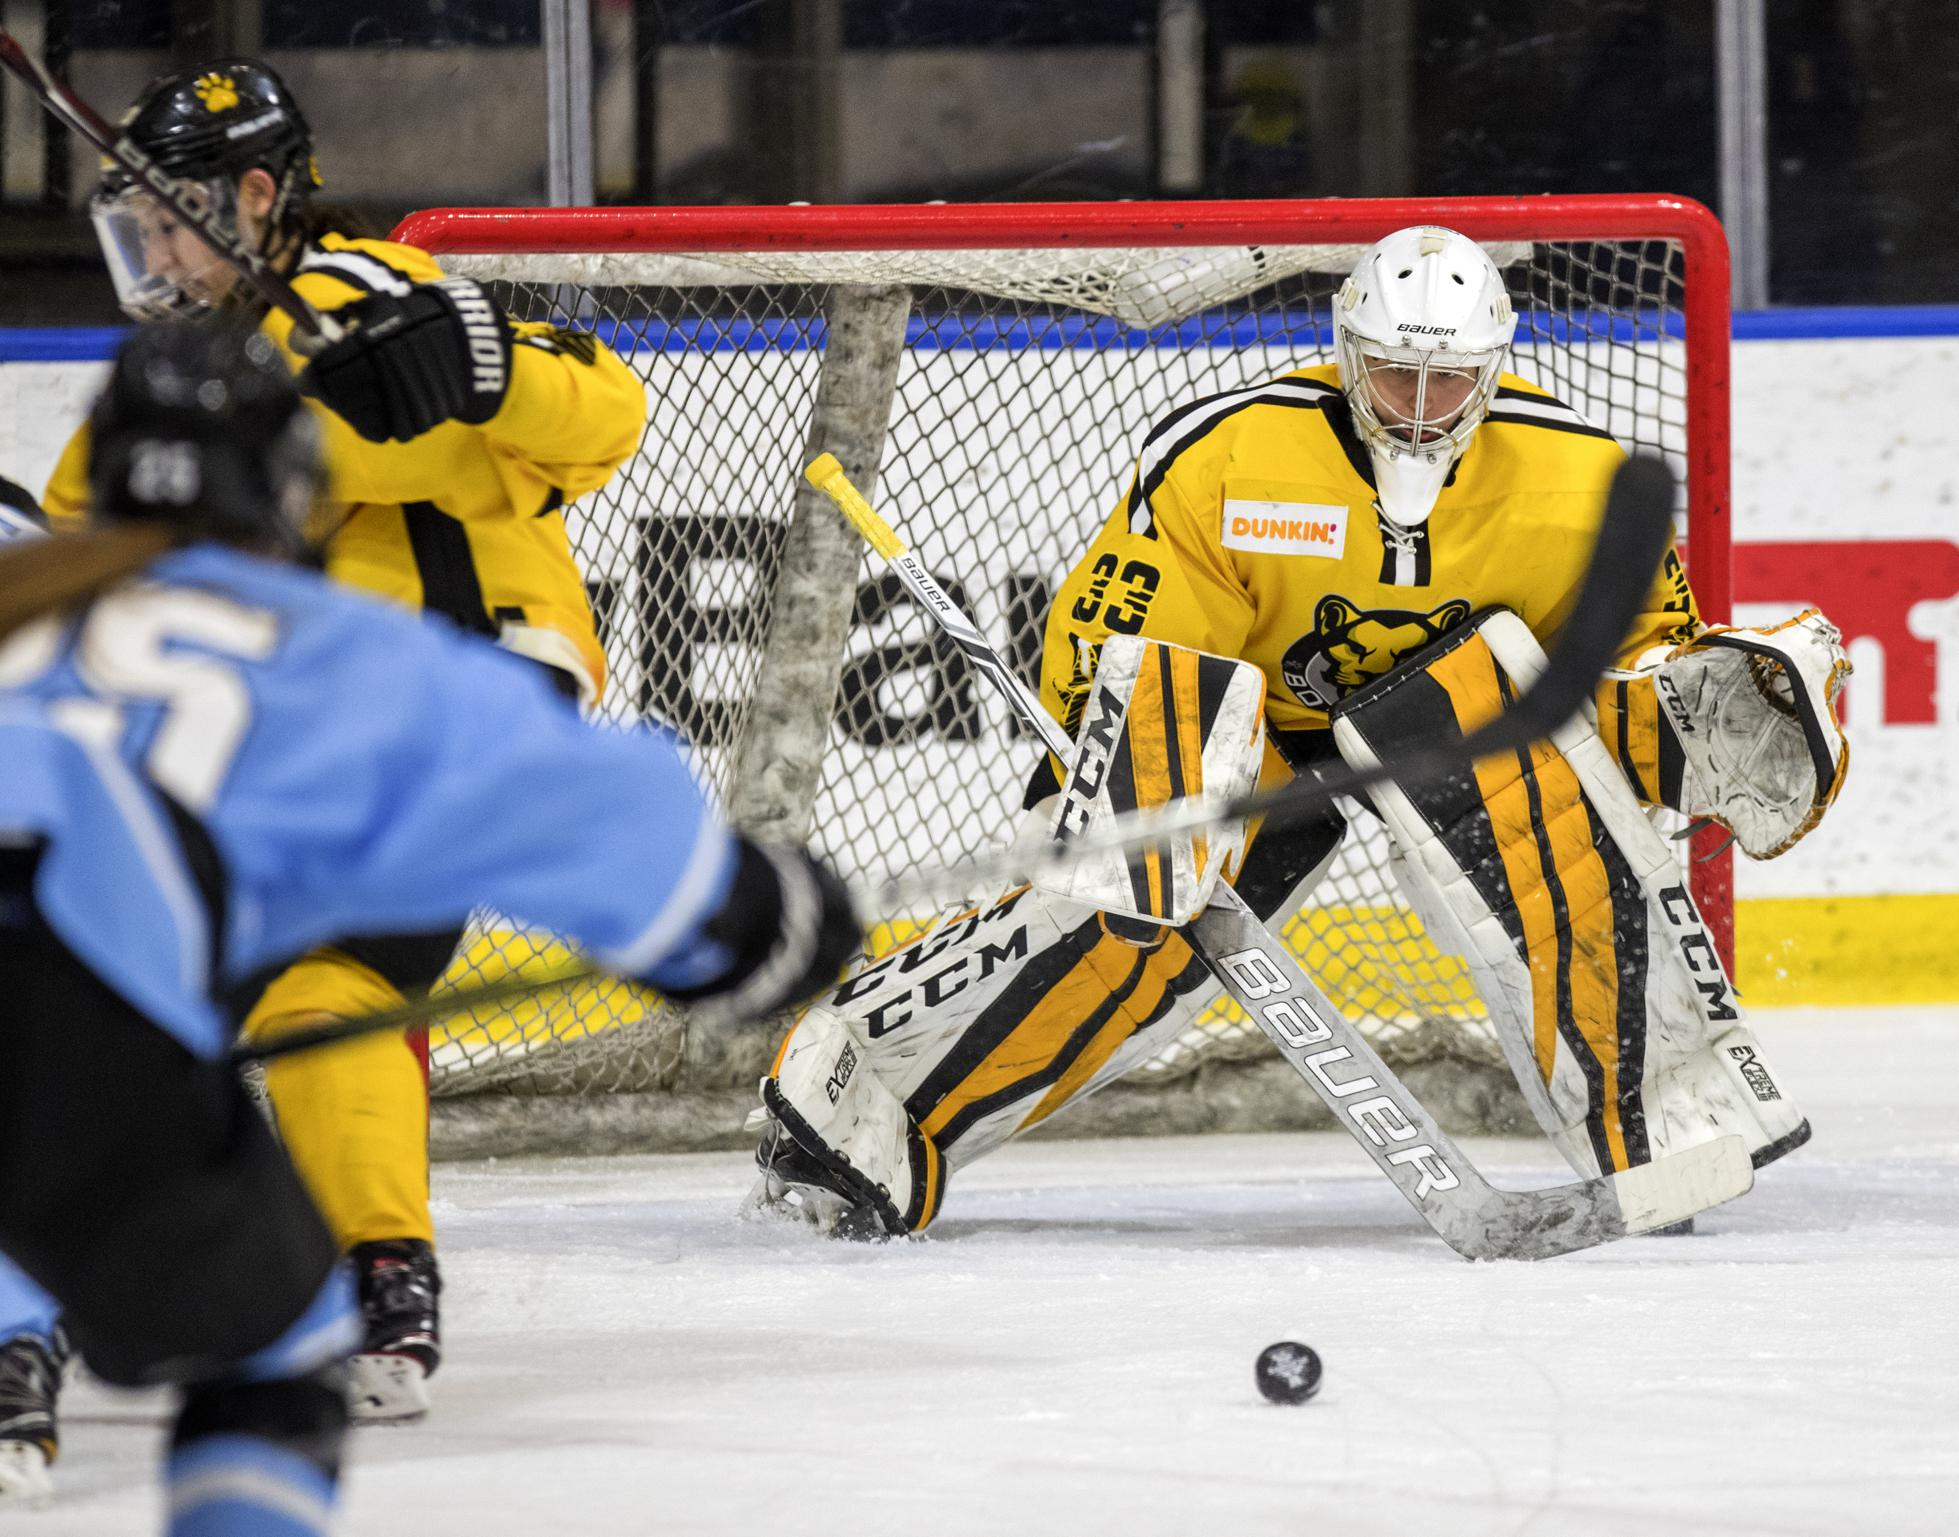 Boston Pride goalie Katie Burt during a 2019 NWHL playoff game against the Buffalo Beauts.